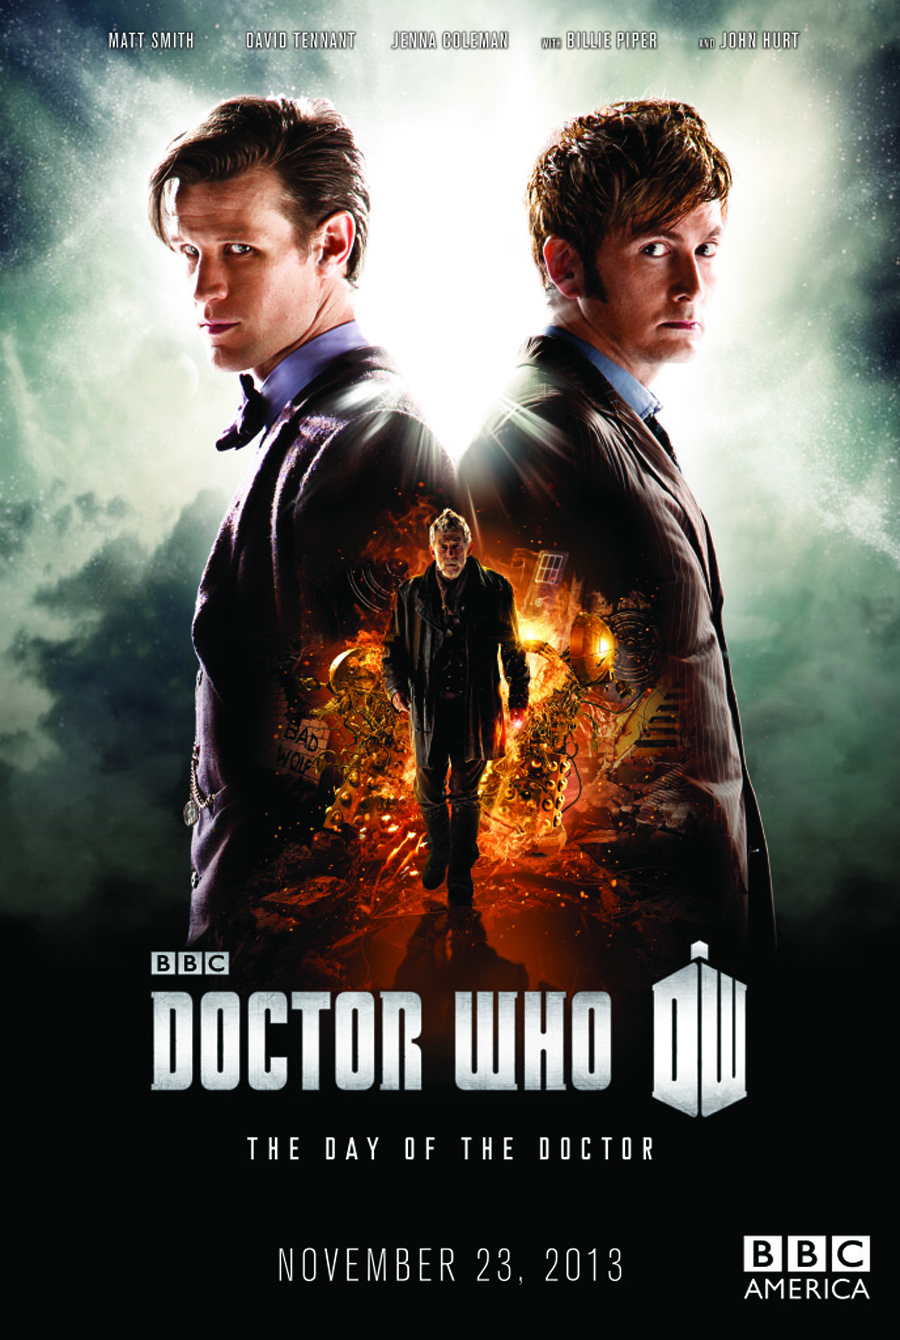 DOCTOR WHO THE DAY OF THE DOCTOR DVD